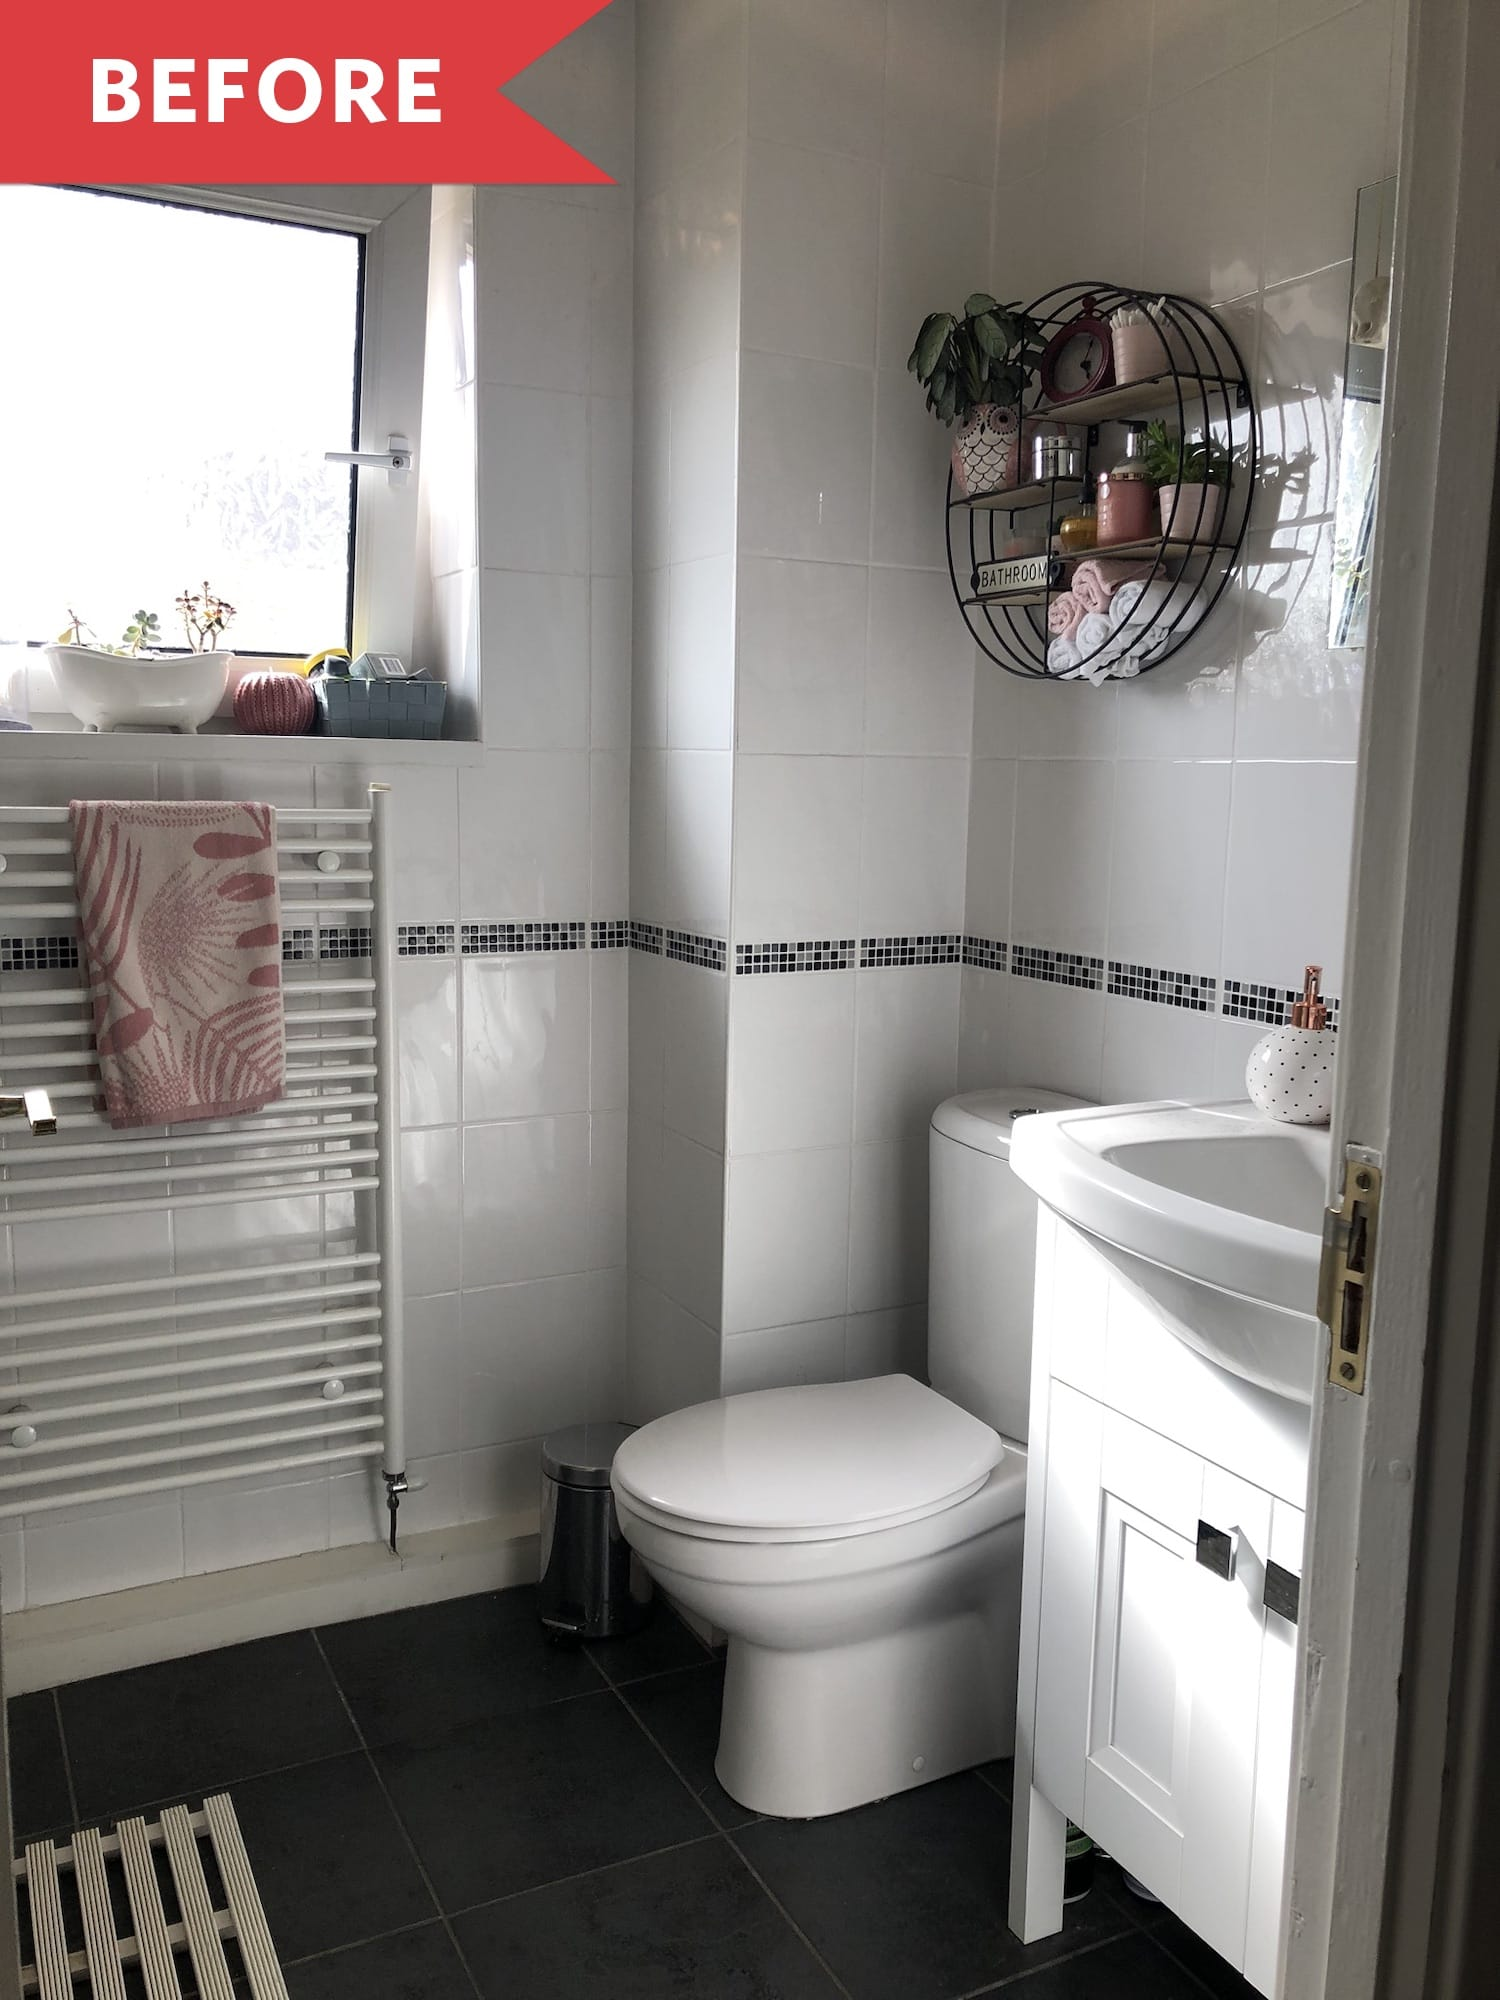 Before and After: A Plain White Bathroom Gets a Greenery-Filled Upgrade